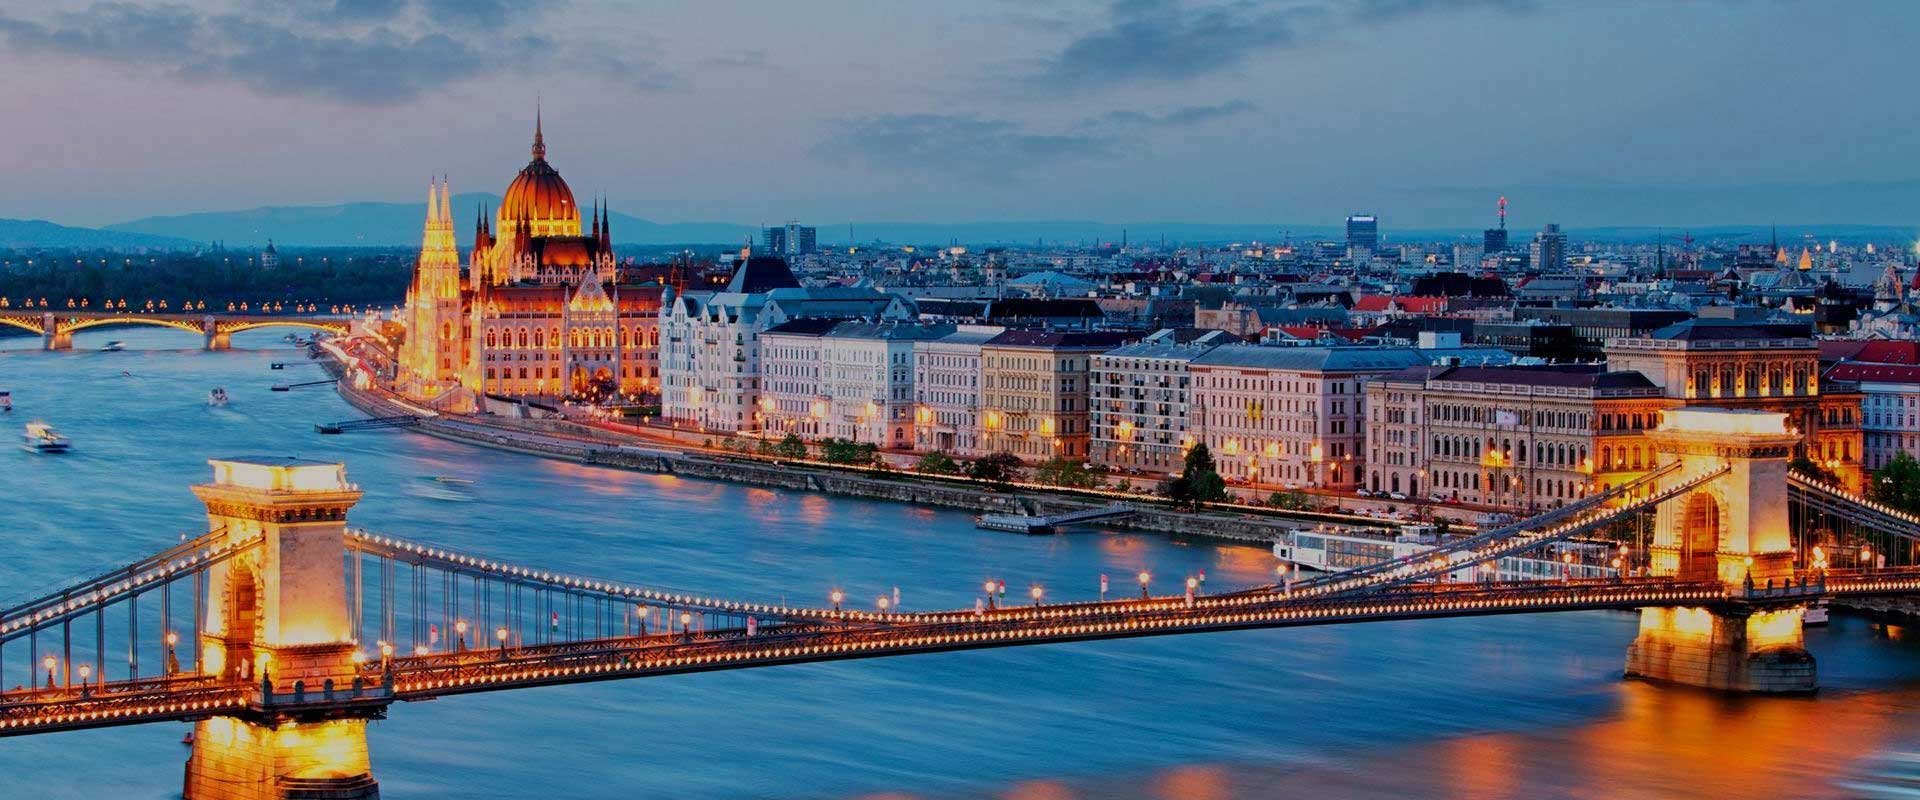 Budapest Night City View